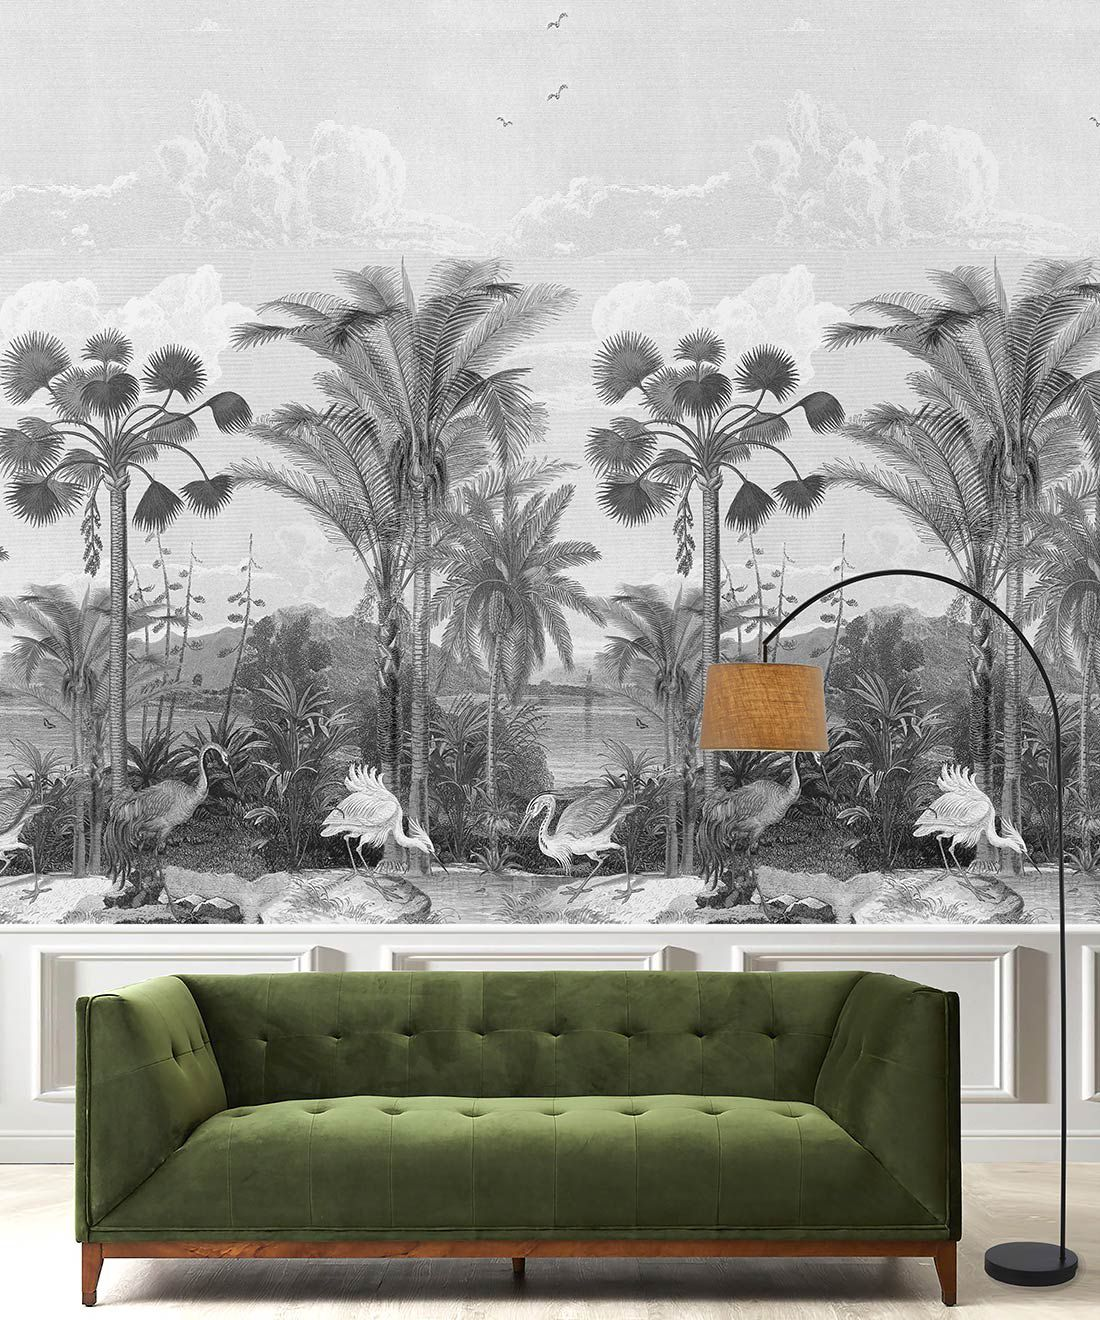 Indian Subcontinent Wallpaper Mural •Bethany Linz • Palm Tree Mural • Black & White • Insitu